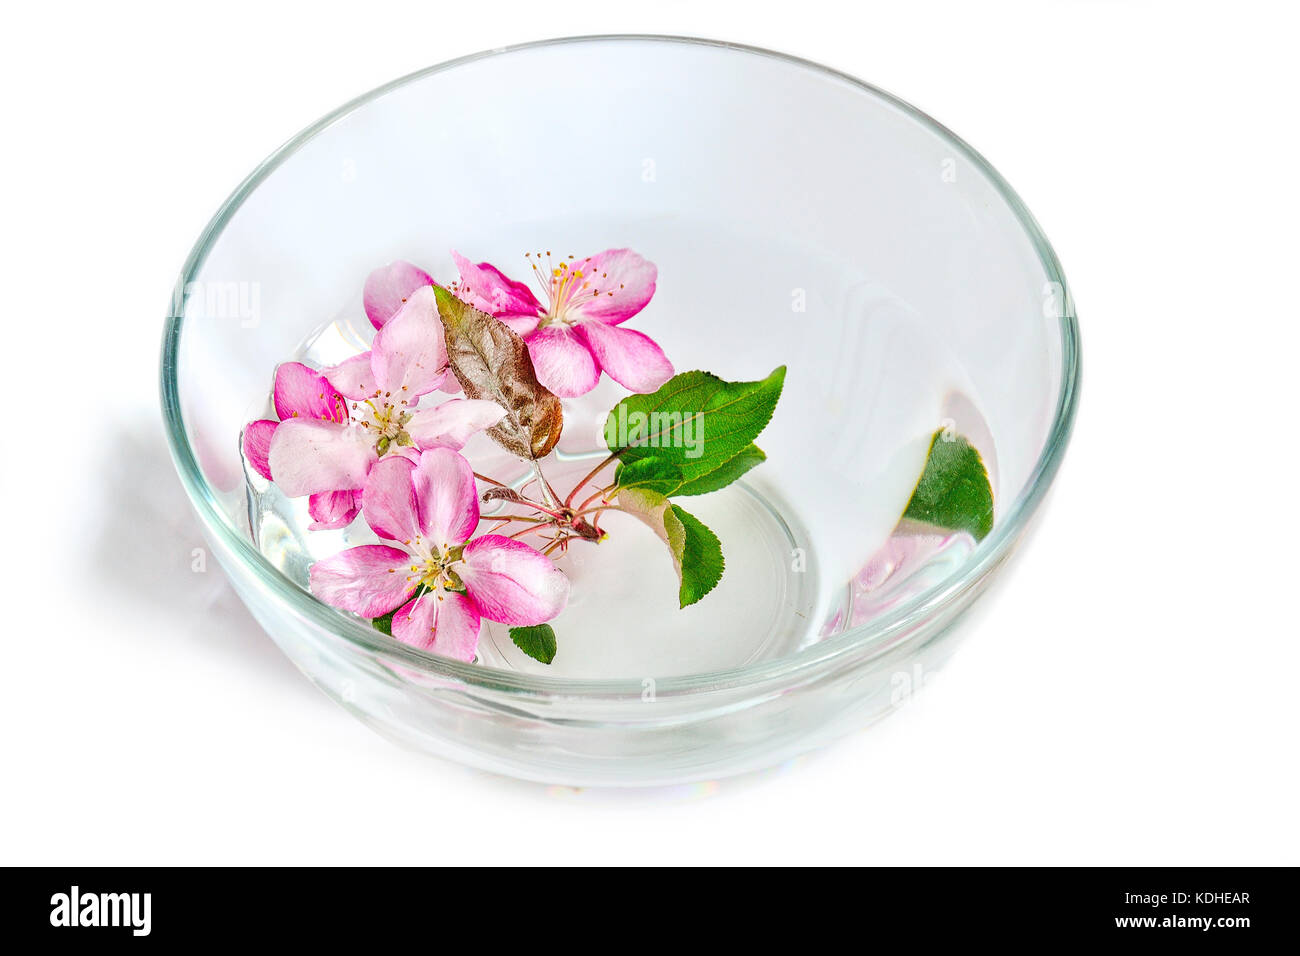 Fresh Pink Cherry Or Apple Tree Flowers Floating In The Glass Bowl